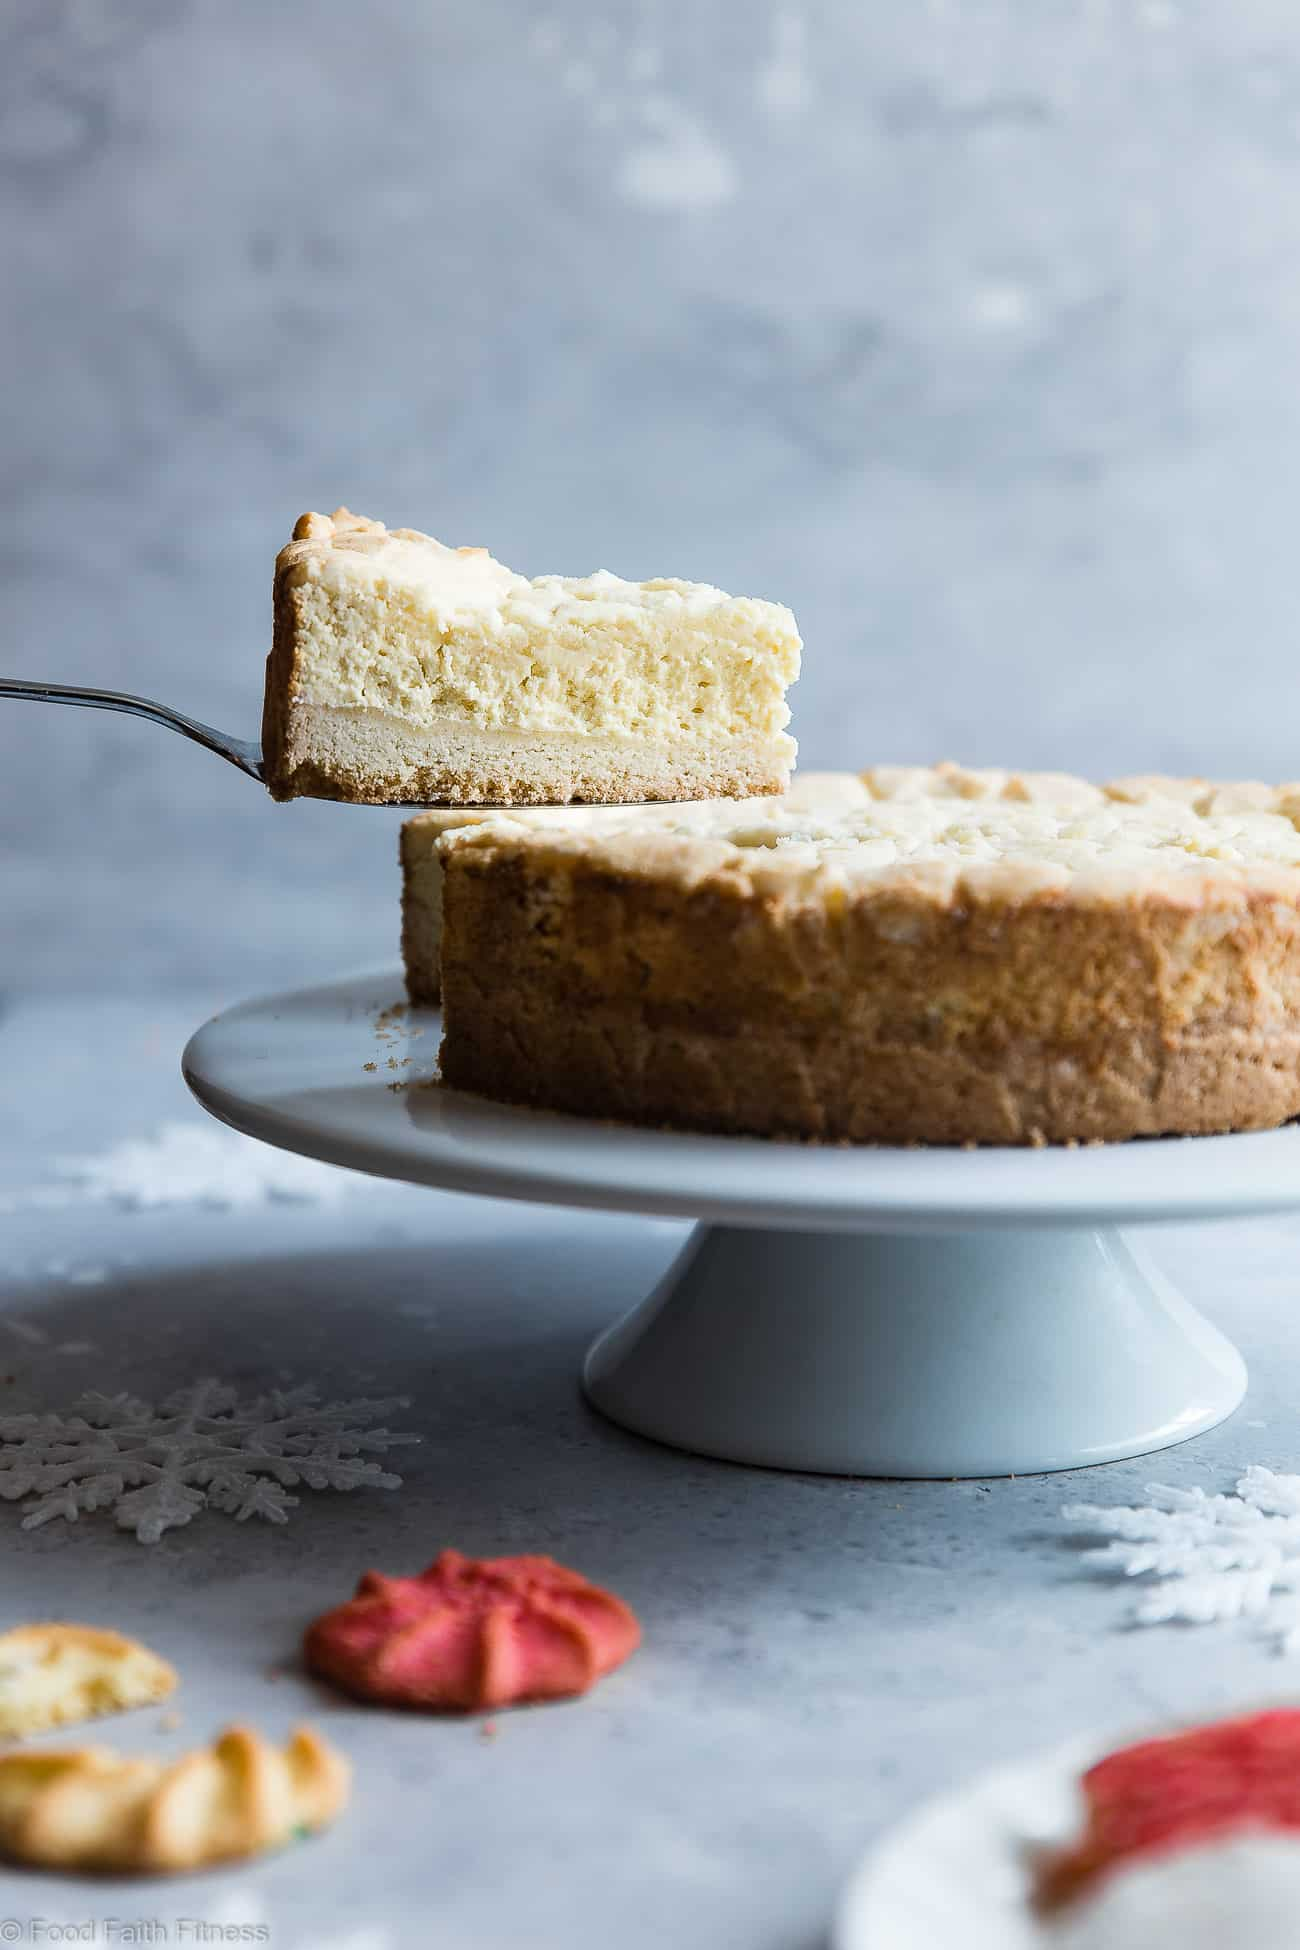 Sugar Cookie Greek Yogurt Gluten Free Cheesecake - This gluten free cheesecake is an easy dessert that combines 2 Holiday treats ! It's so creamy you won't believe it's healthy, sugar free and only 235 calories! | Foodfaithfitness.com | @FoodFaithFit